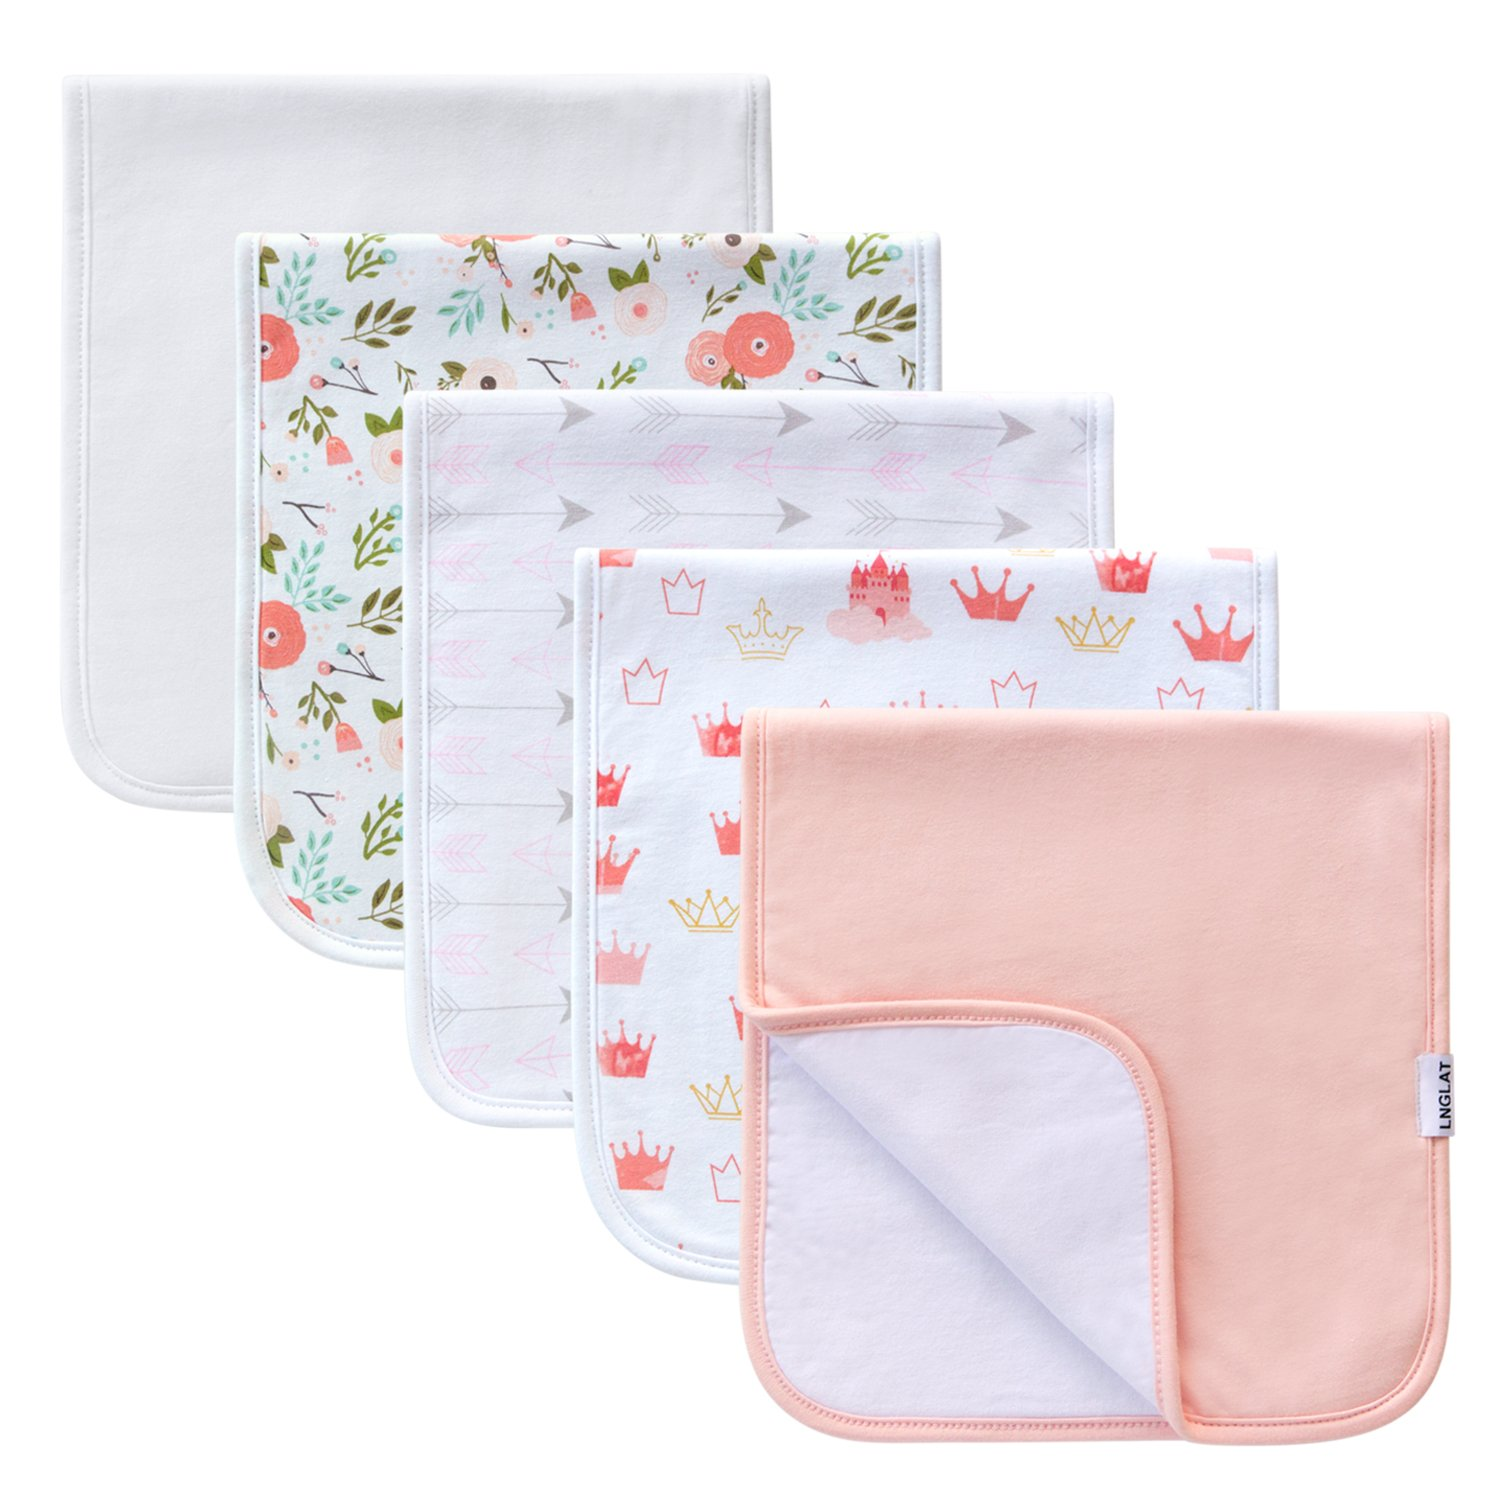 100/% Organic Cotton Baby Shower Gift Set by LNGLAT Thick Triple Layer Burping Rags for Newborns Soft and Absorbent Towels 5-Pack Baby Burp Cloths for Boys and Girls